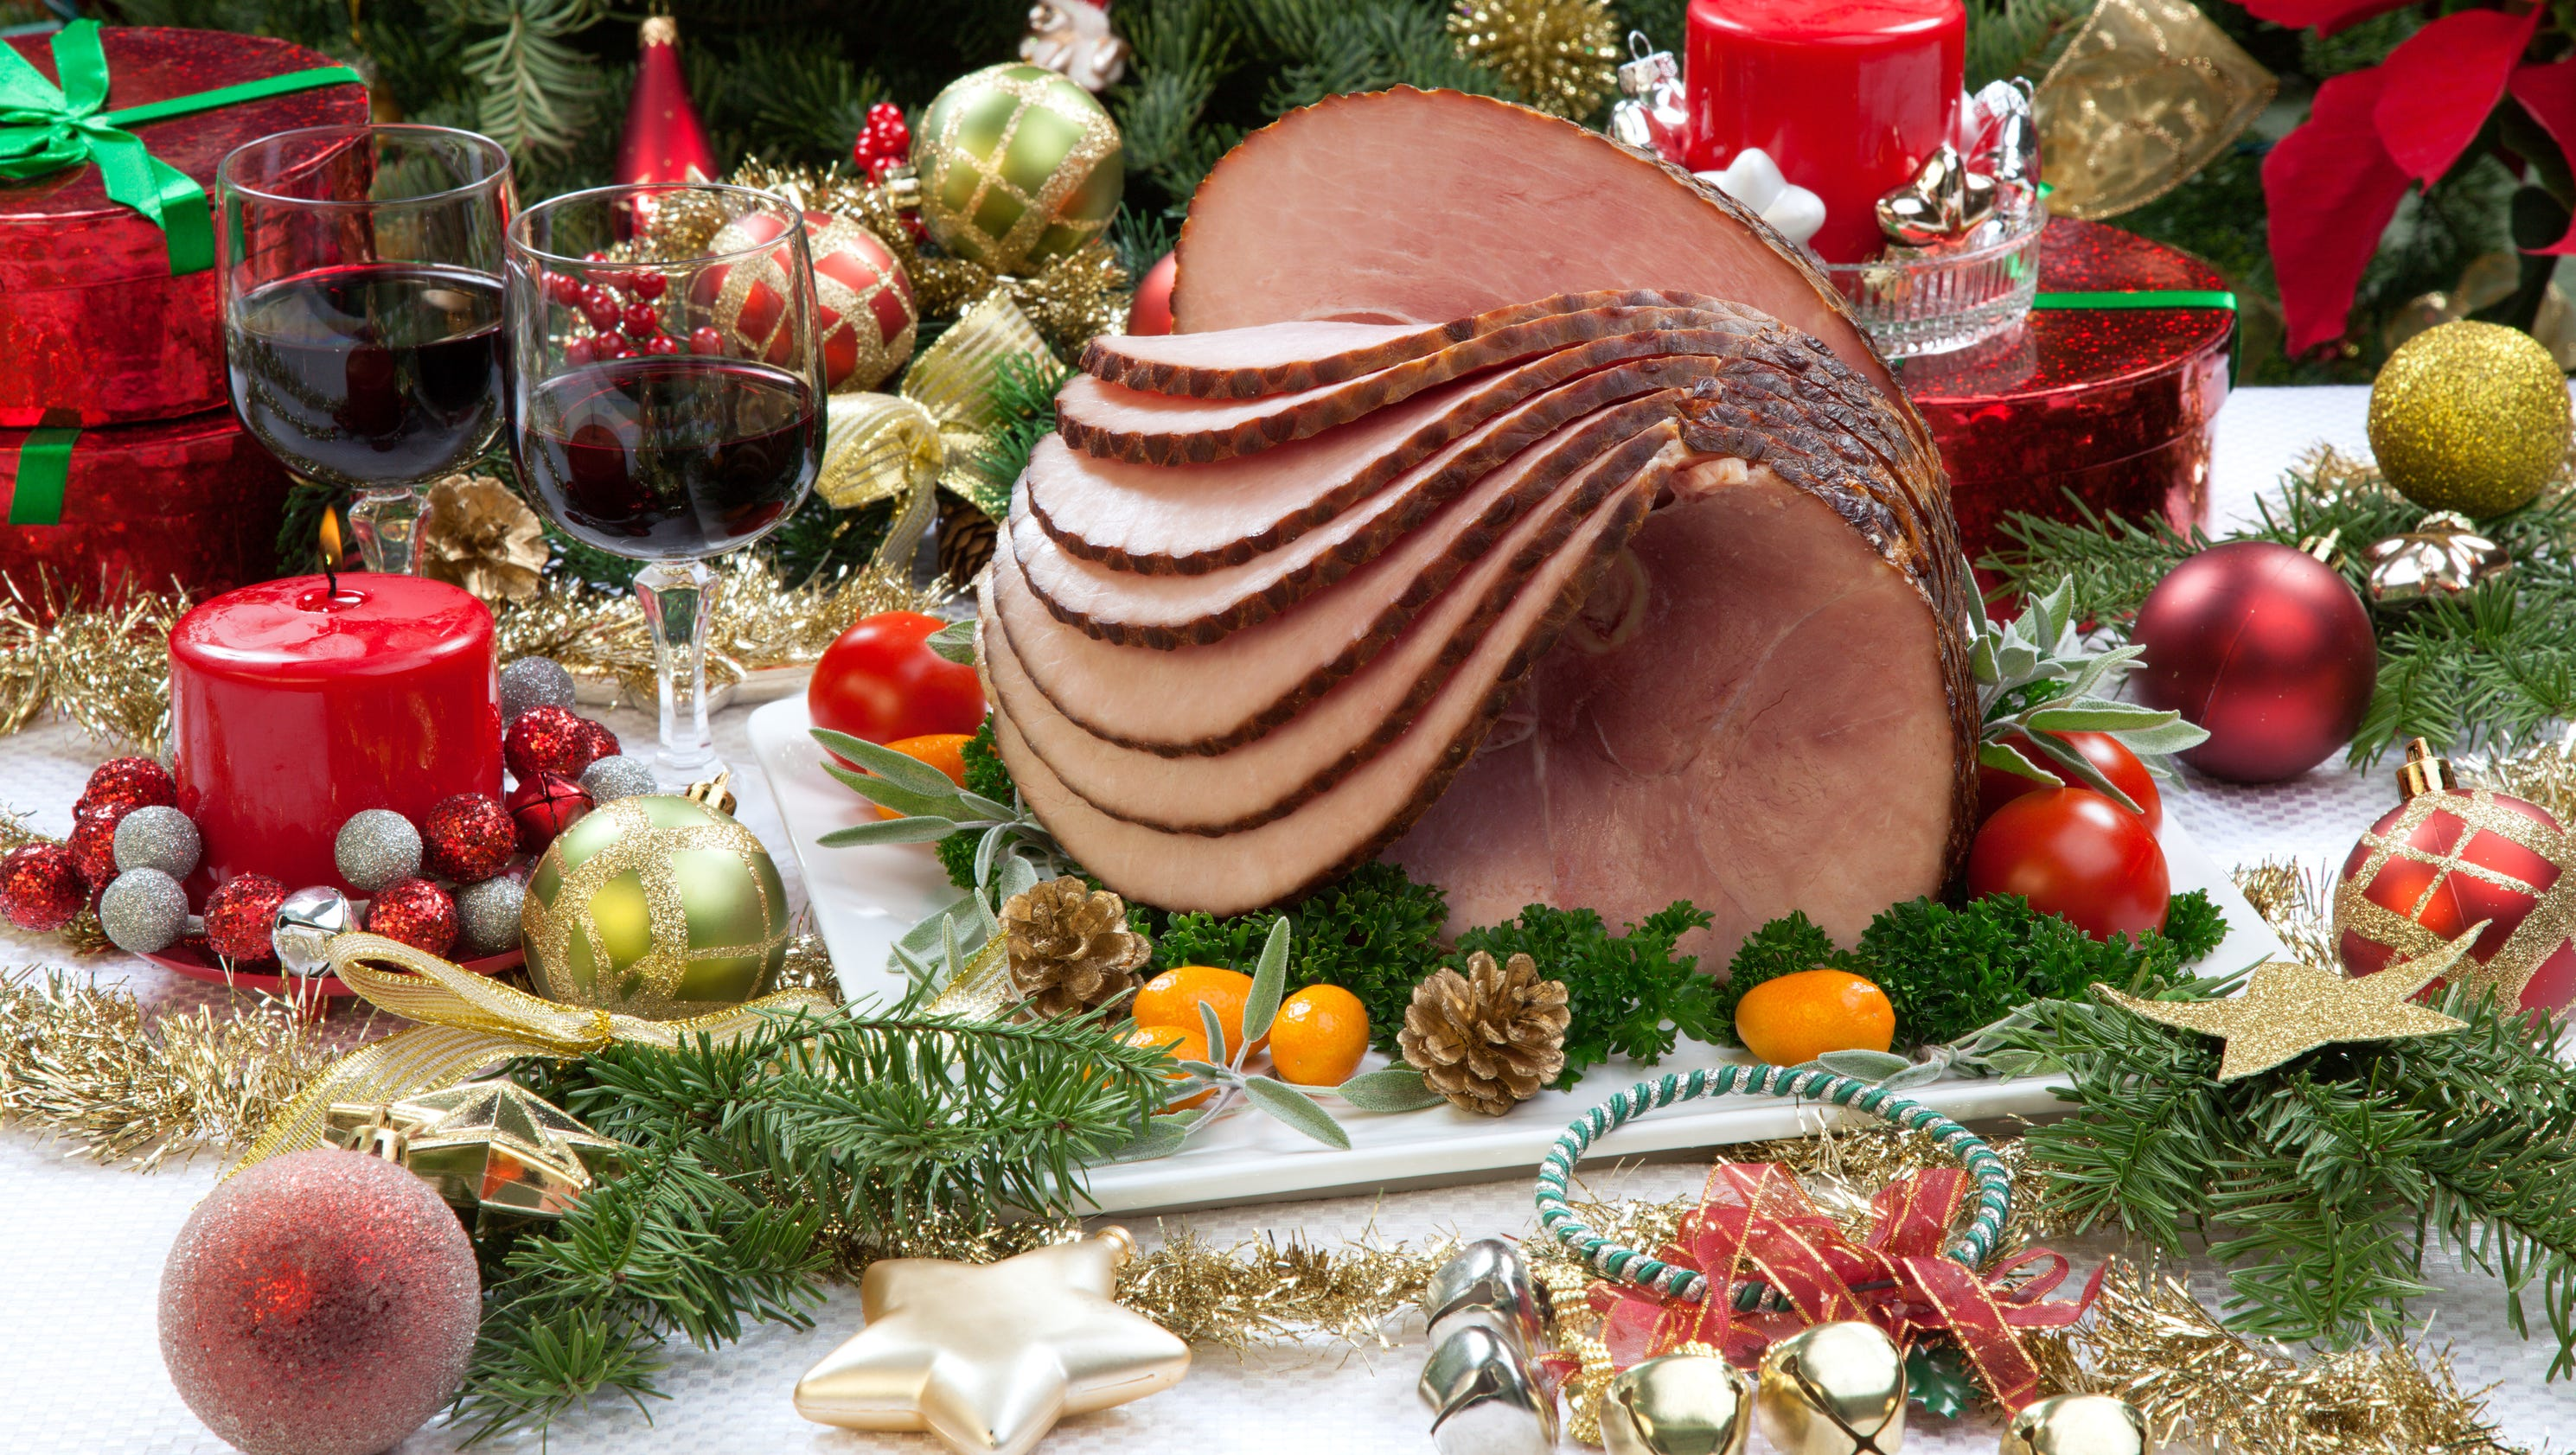 DAY 3: Holiday Ham Giveaway